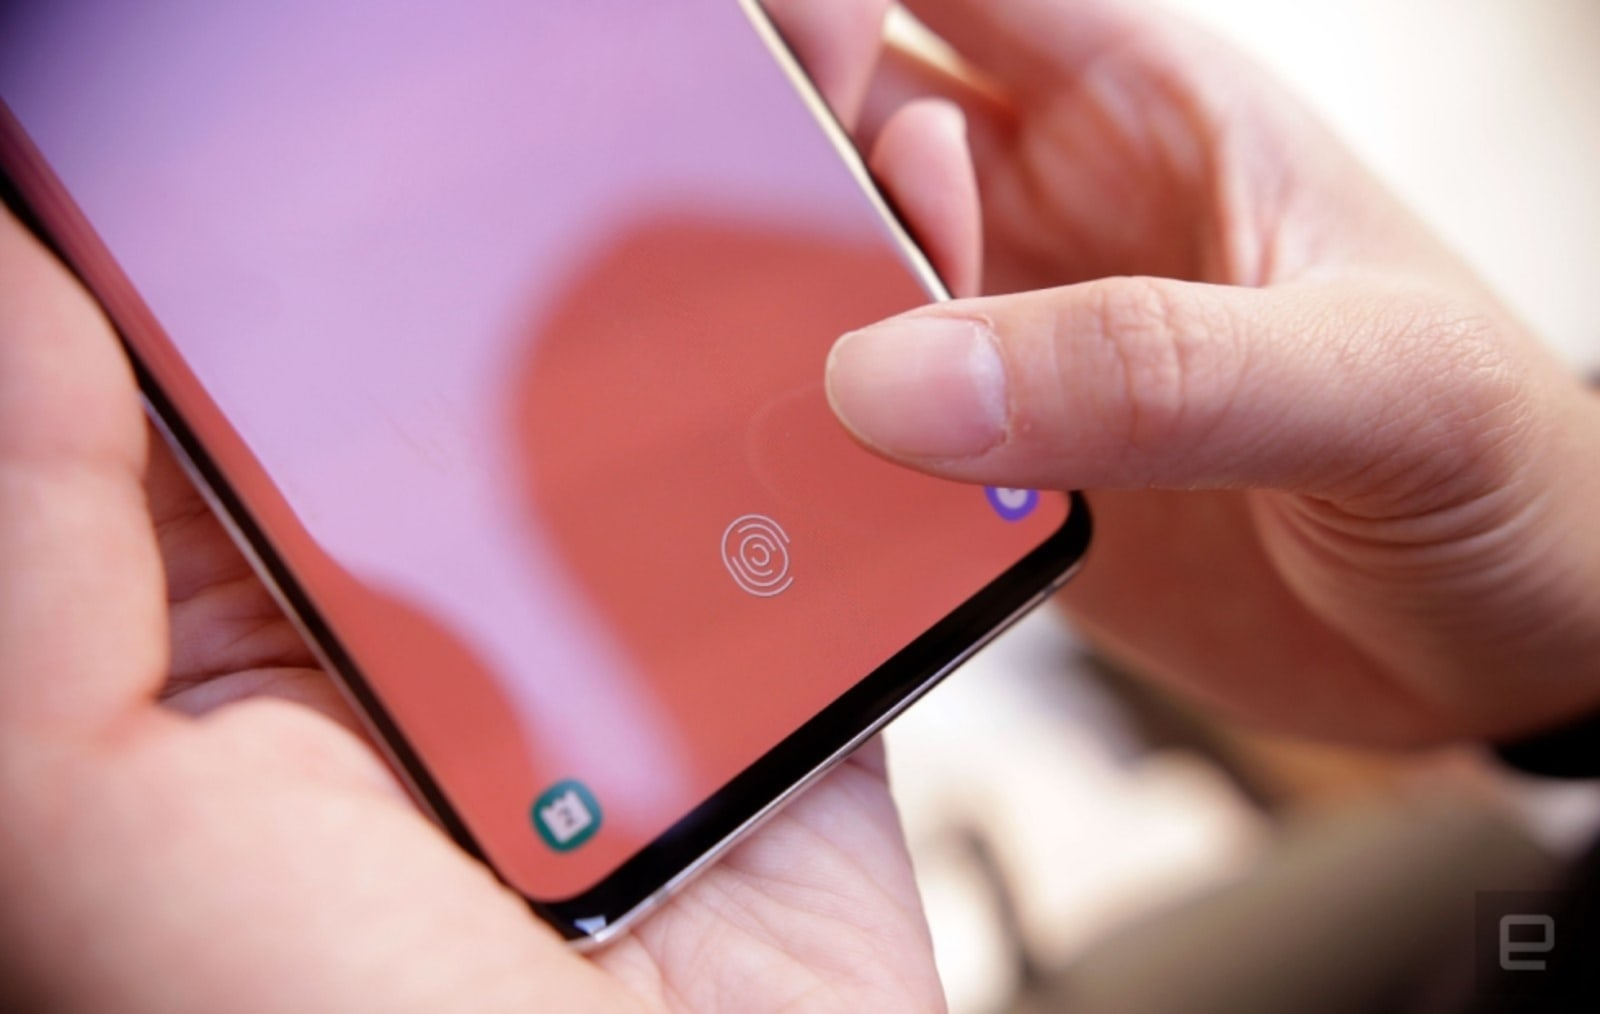 Samsung Galaxy S10+ fingerprint scanner